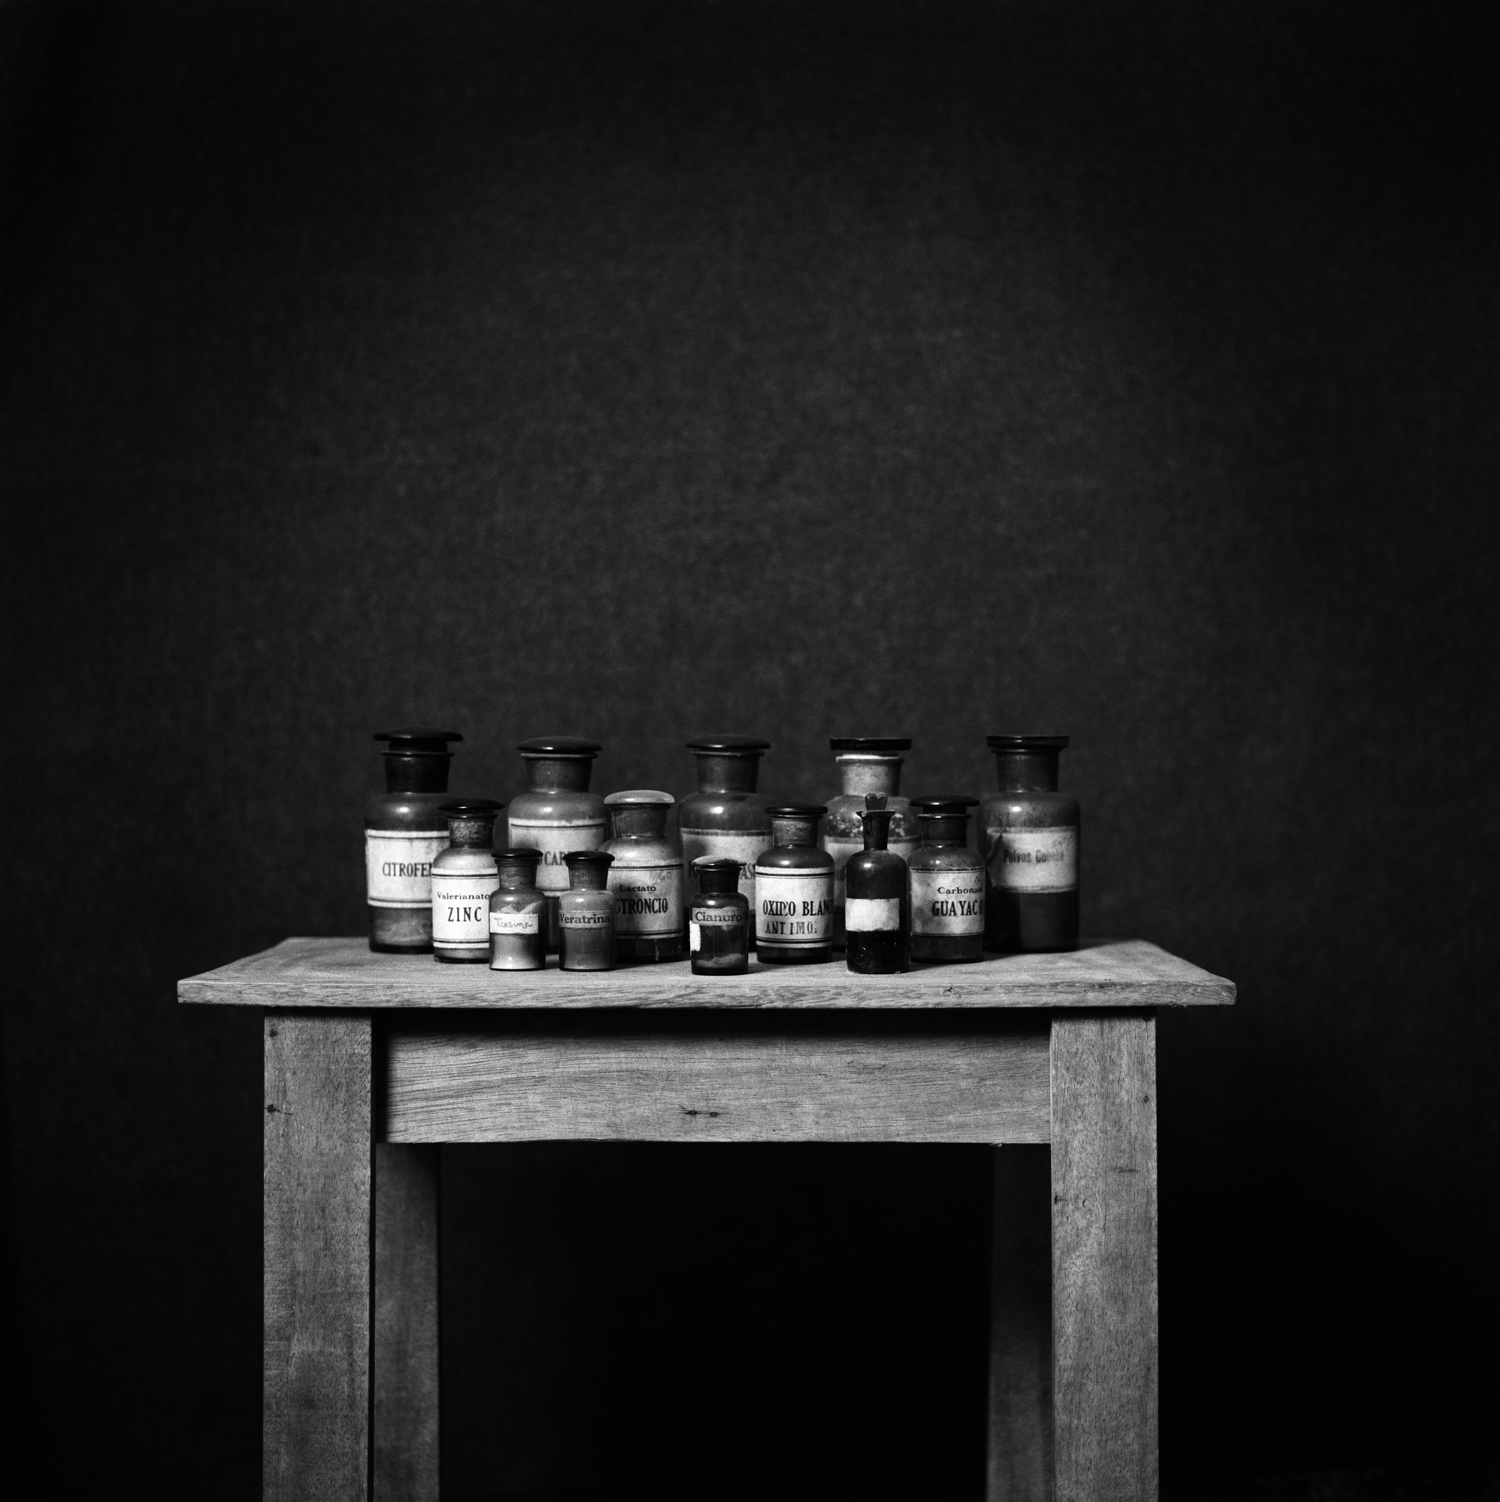 The End (Cyanide)  Archival charcoal pigment print on cotton paper. Triptych. 40 x 120 in. Detail.